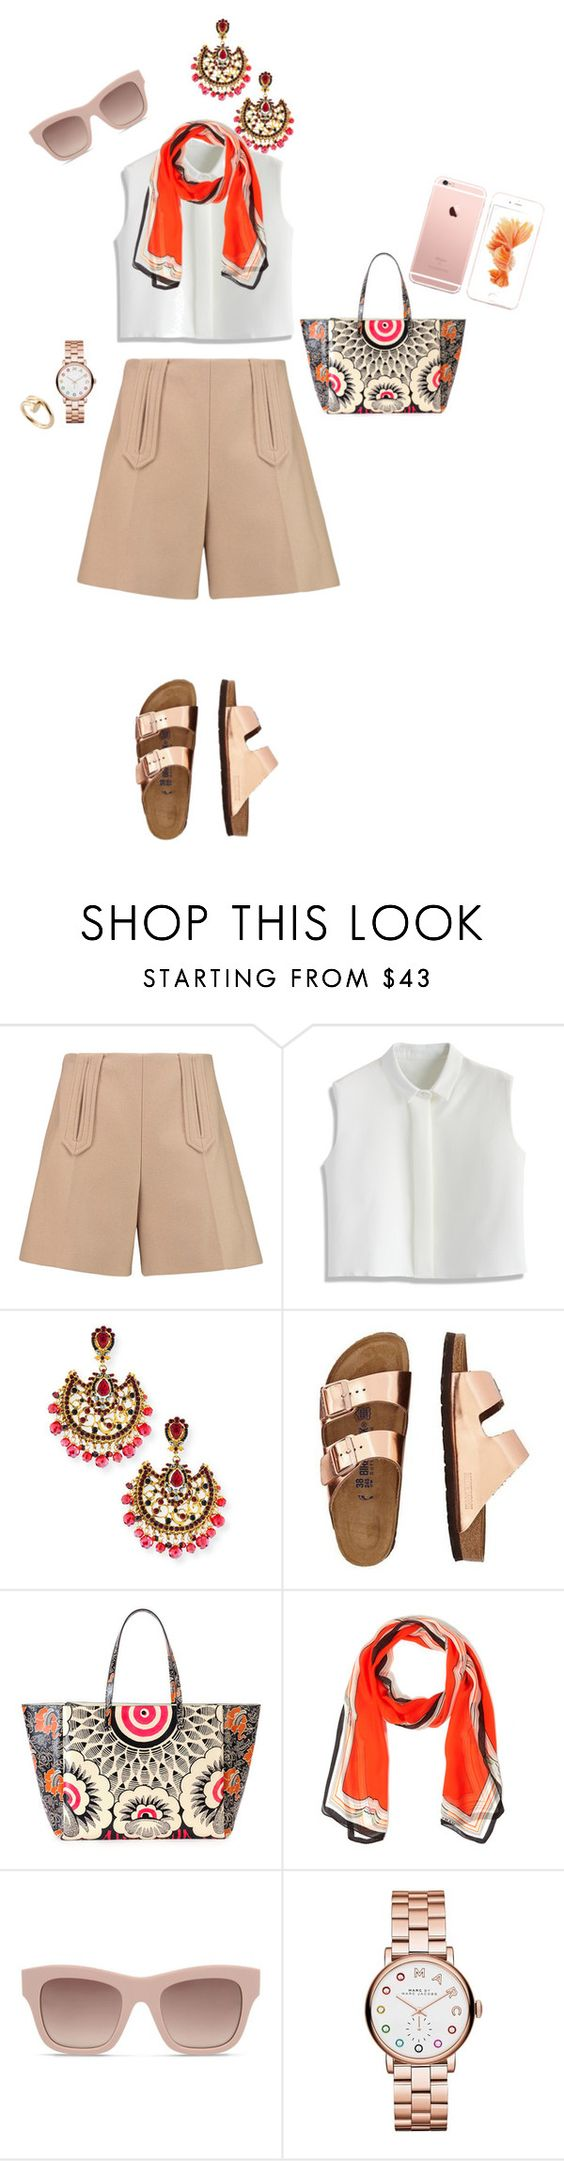 """Sin título #15"" by znouba-8 ❤ liked on Polyvore featuring Carven, Chicwish, Jose & Maria Barrera, TravelSmith, Valentino, Mary Katrantzou, STELLA McCARTNEY, Marc by Marc Jacobs, Cartier and women's clothing"